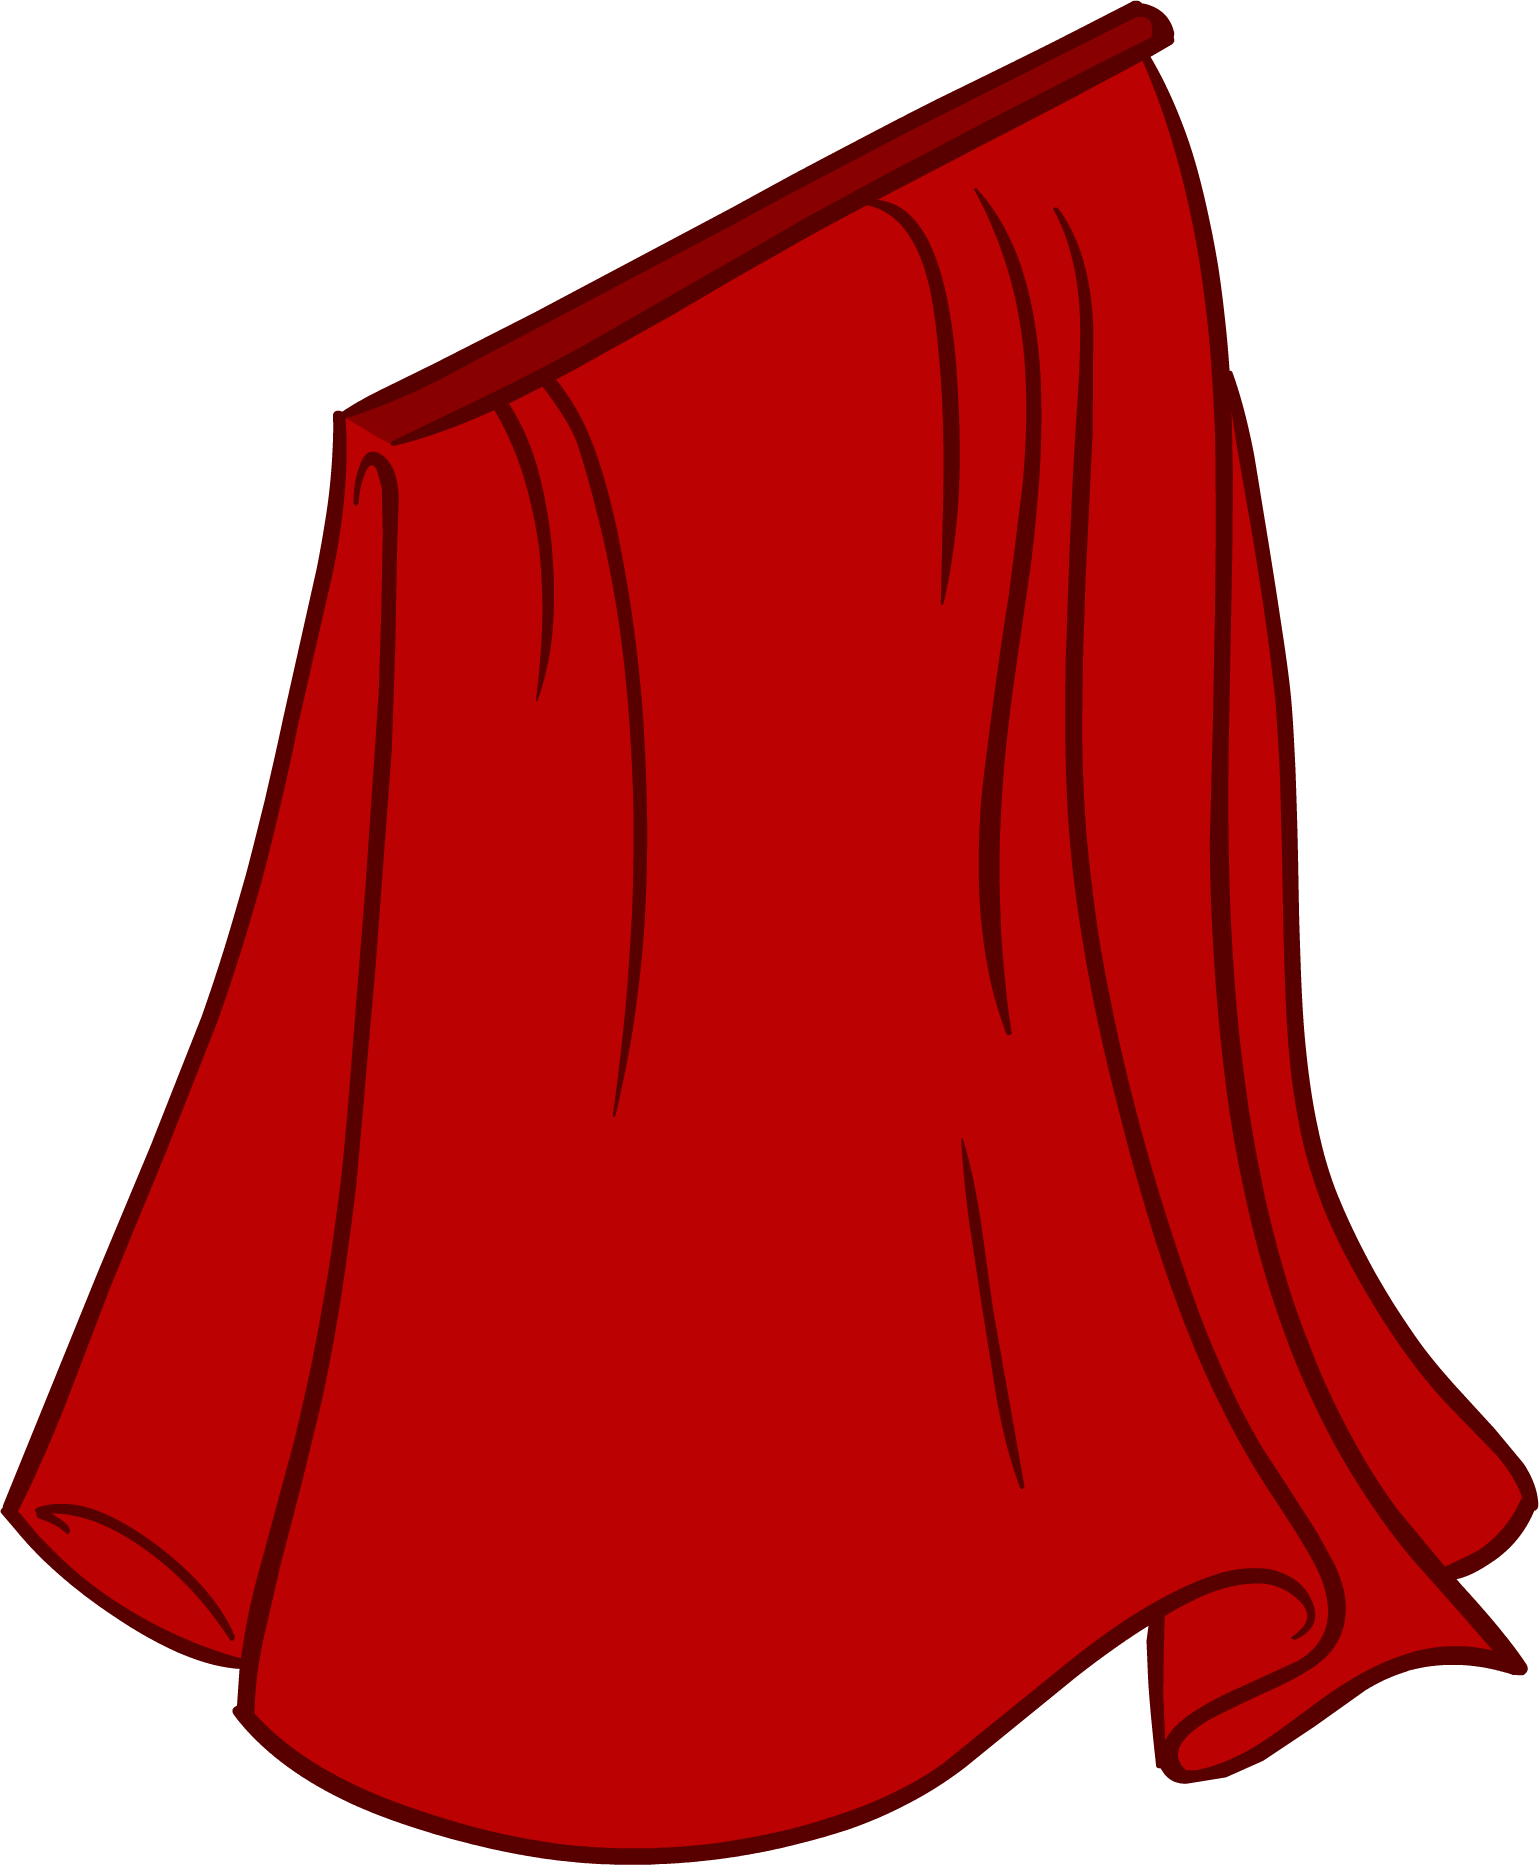 Cape clipart cartoon red, Cape cartoon red Transparent FREE.